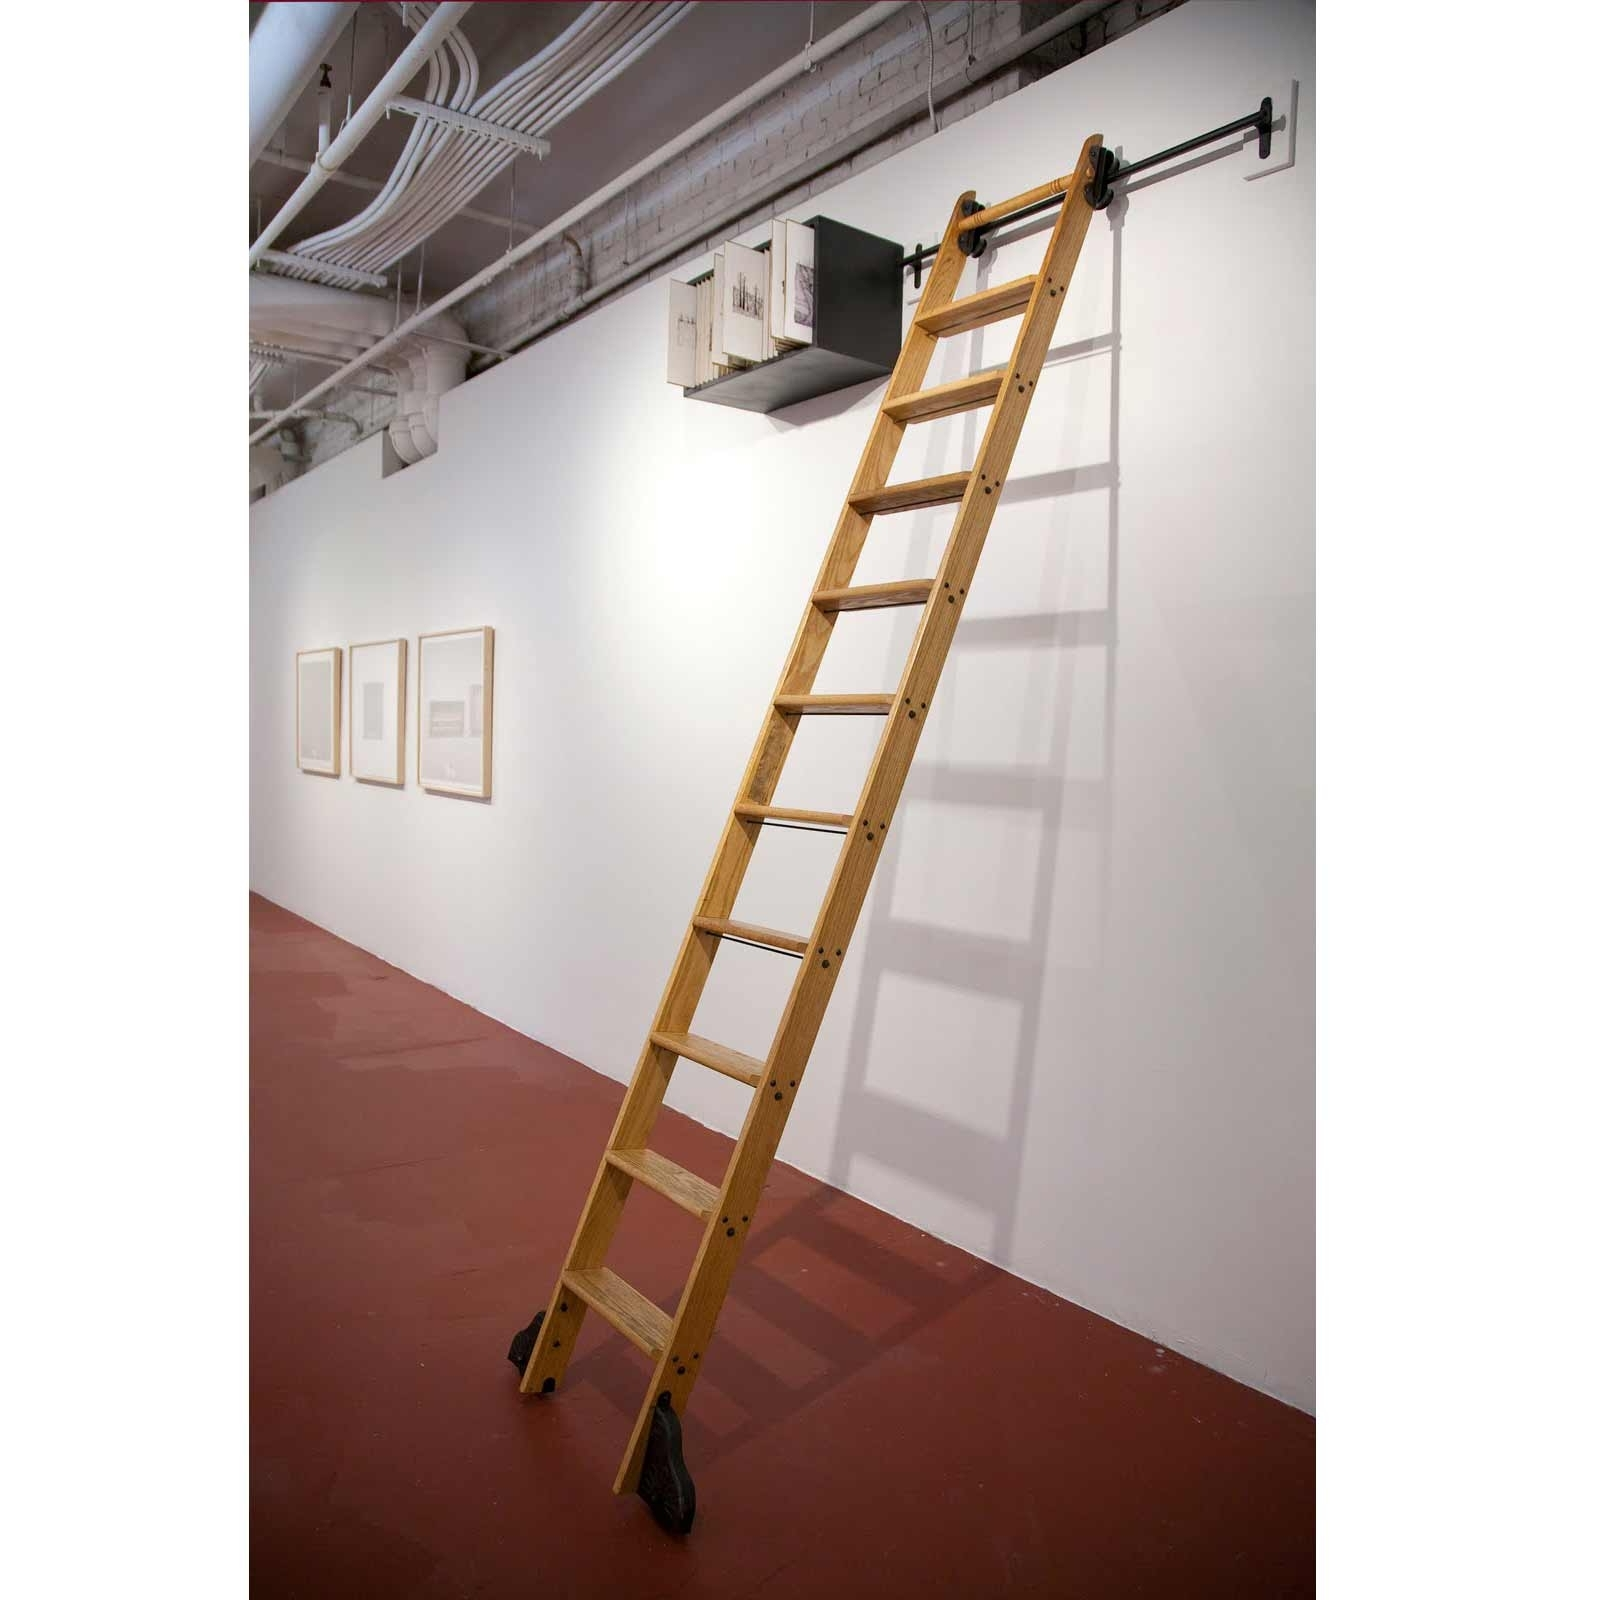 Wooden Library Ladders Intended For Current Stair Library Stairs Ladders Including Awesome Of Surprising (View 7 of 15)